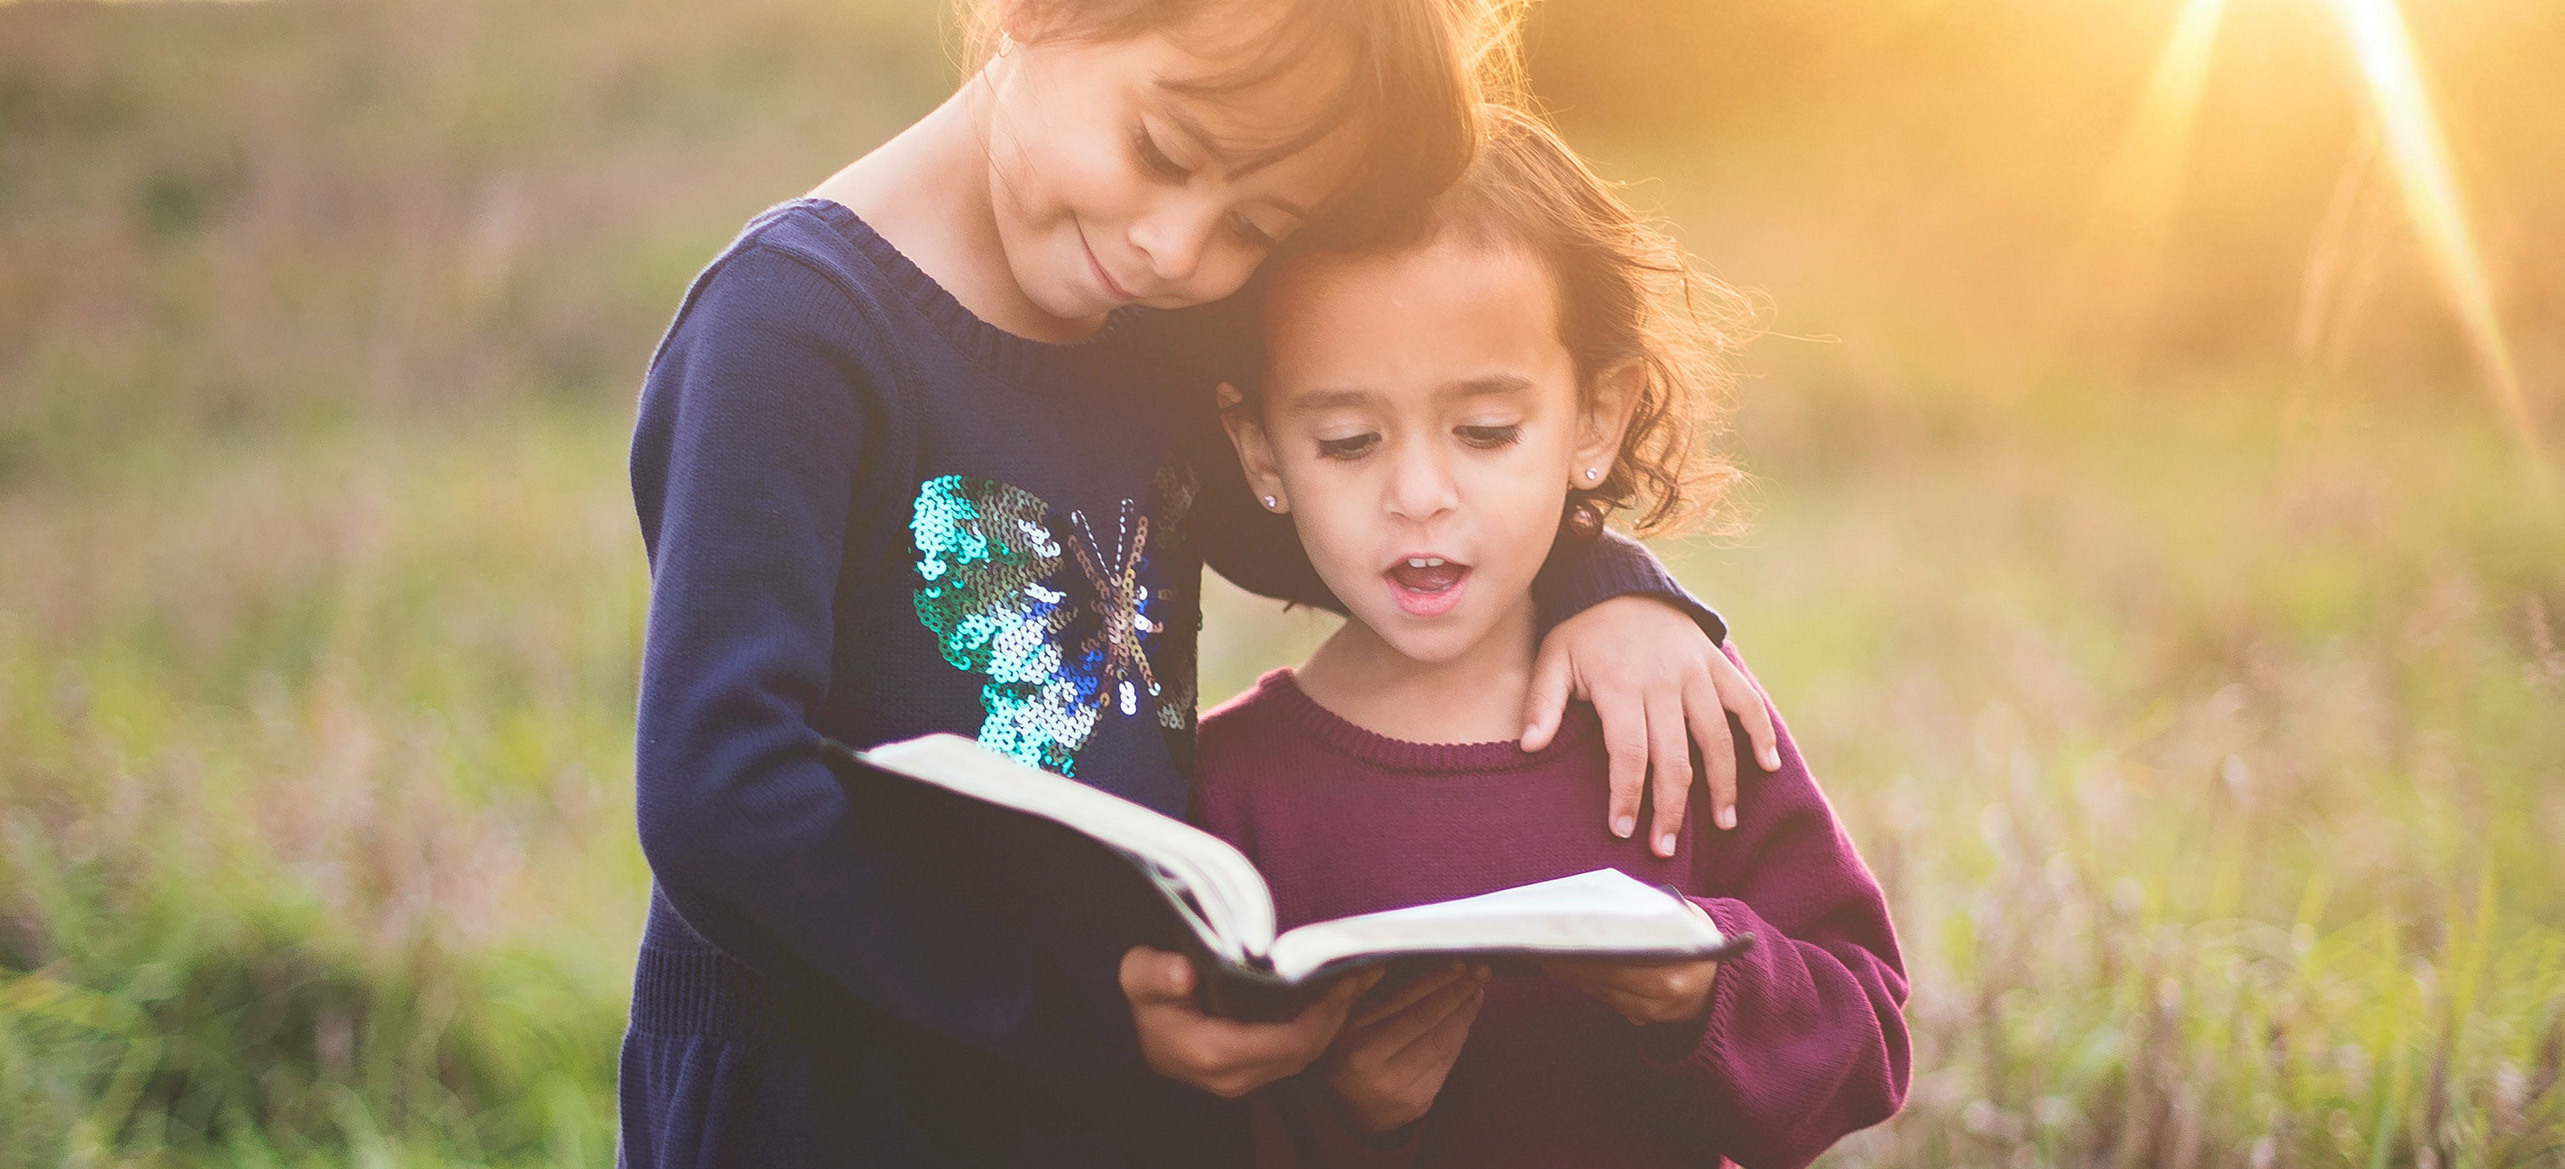 two young children holding a bible, reading and smiling outside